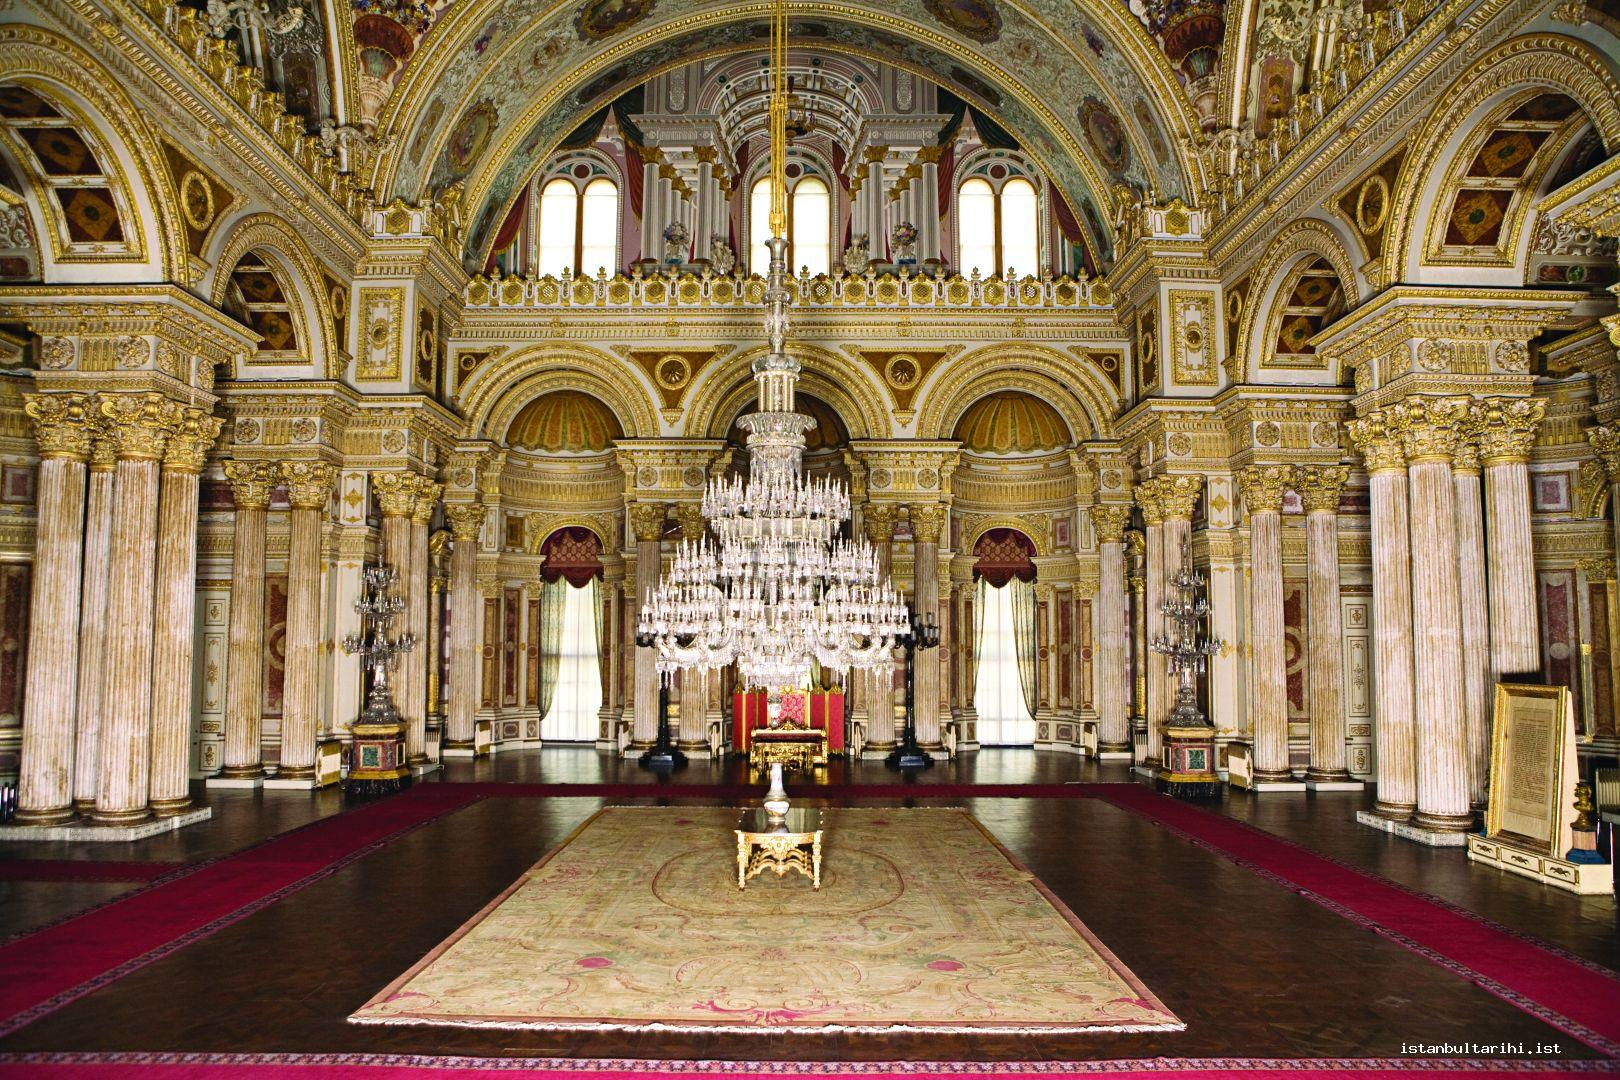 5- Zülvecheyn (one with two faces) Hall in Dolmabahçe Palace